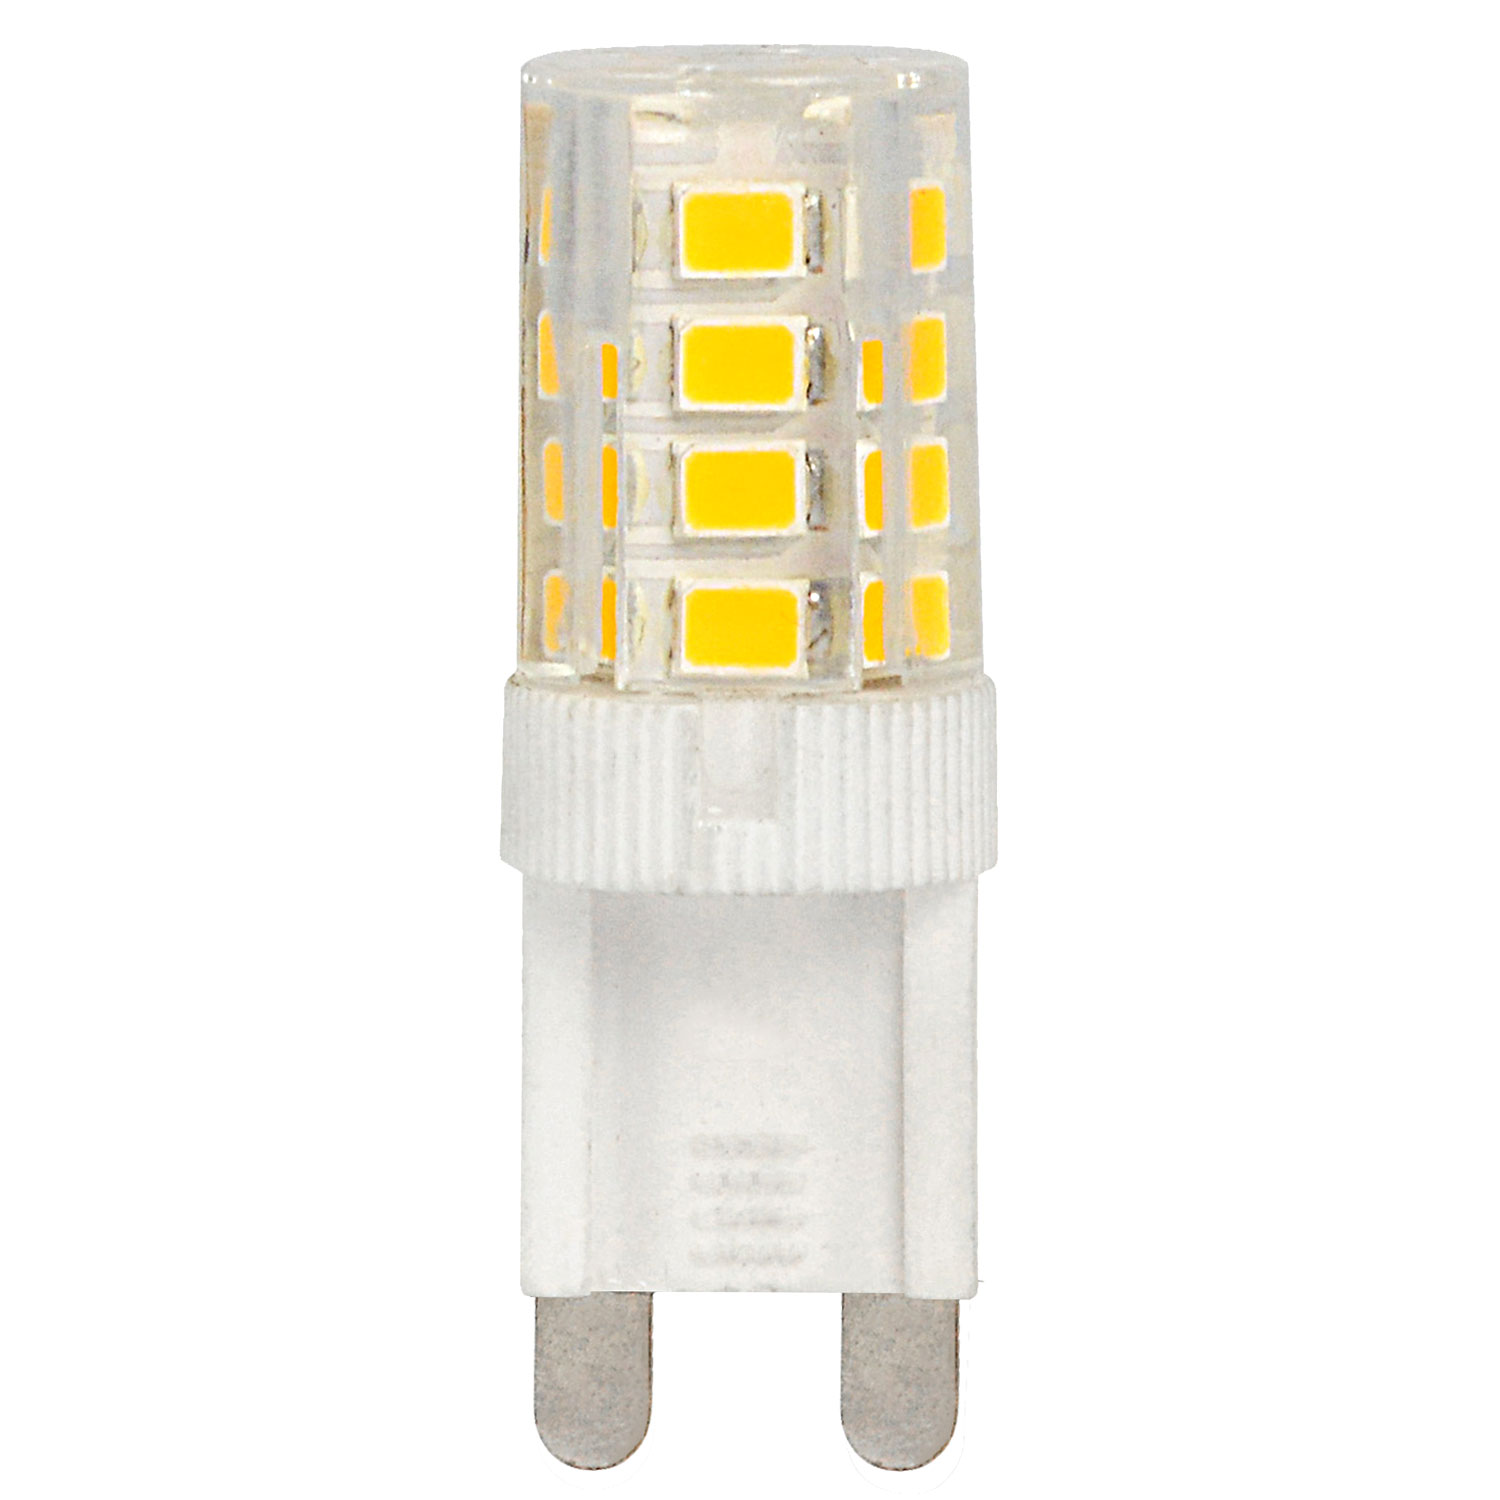 Mengsled Mengs G9 3w Led Light 26x 2835 Smd Led Bulb Lamp Ac 220 240v In Warm White Cool